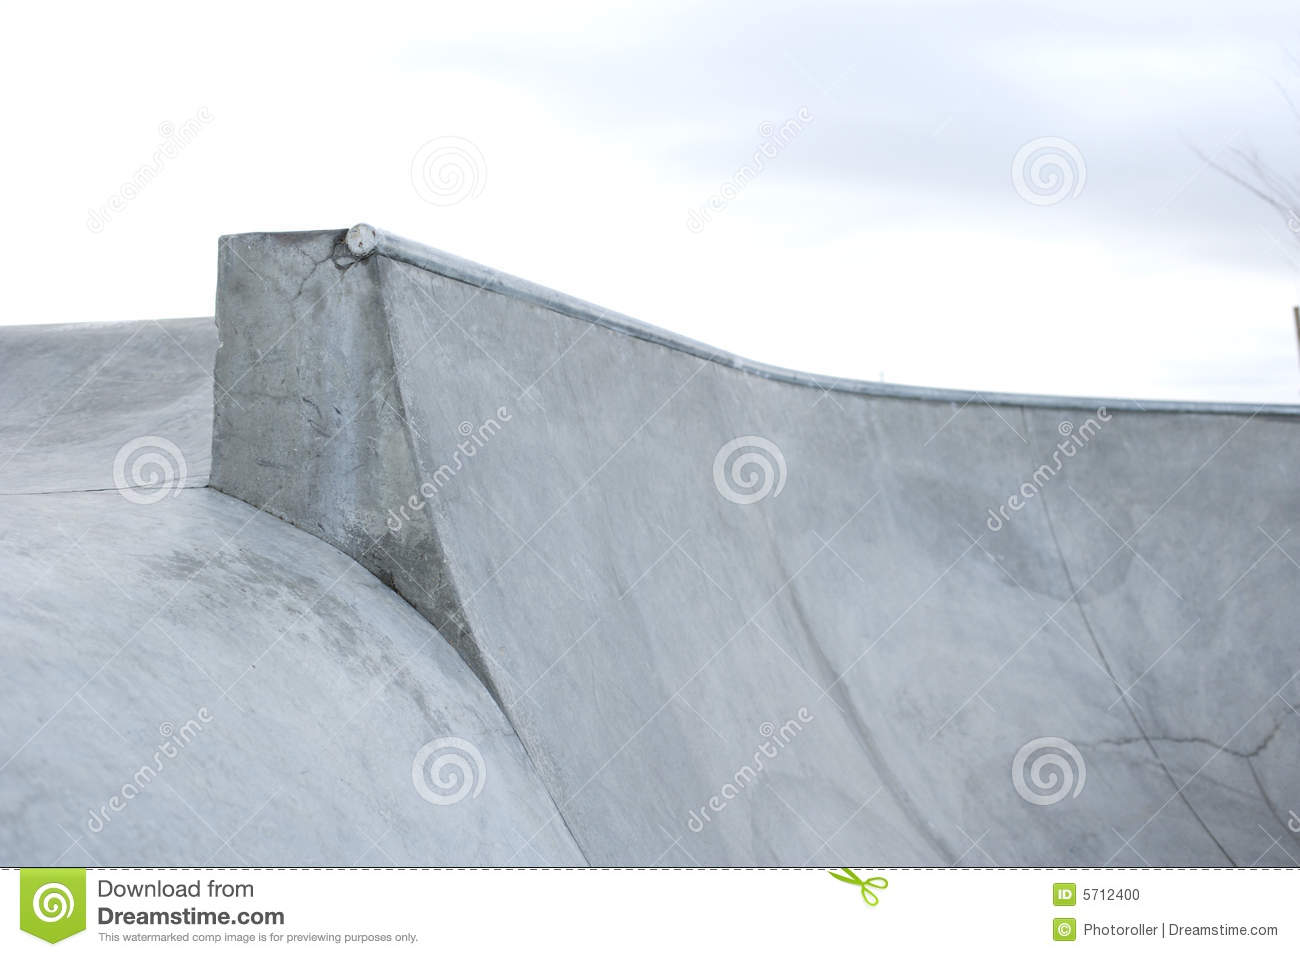 Ramp Transions At A Concreat Skatepark